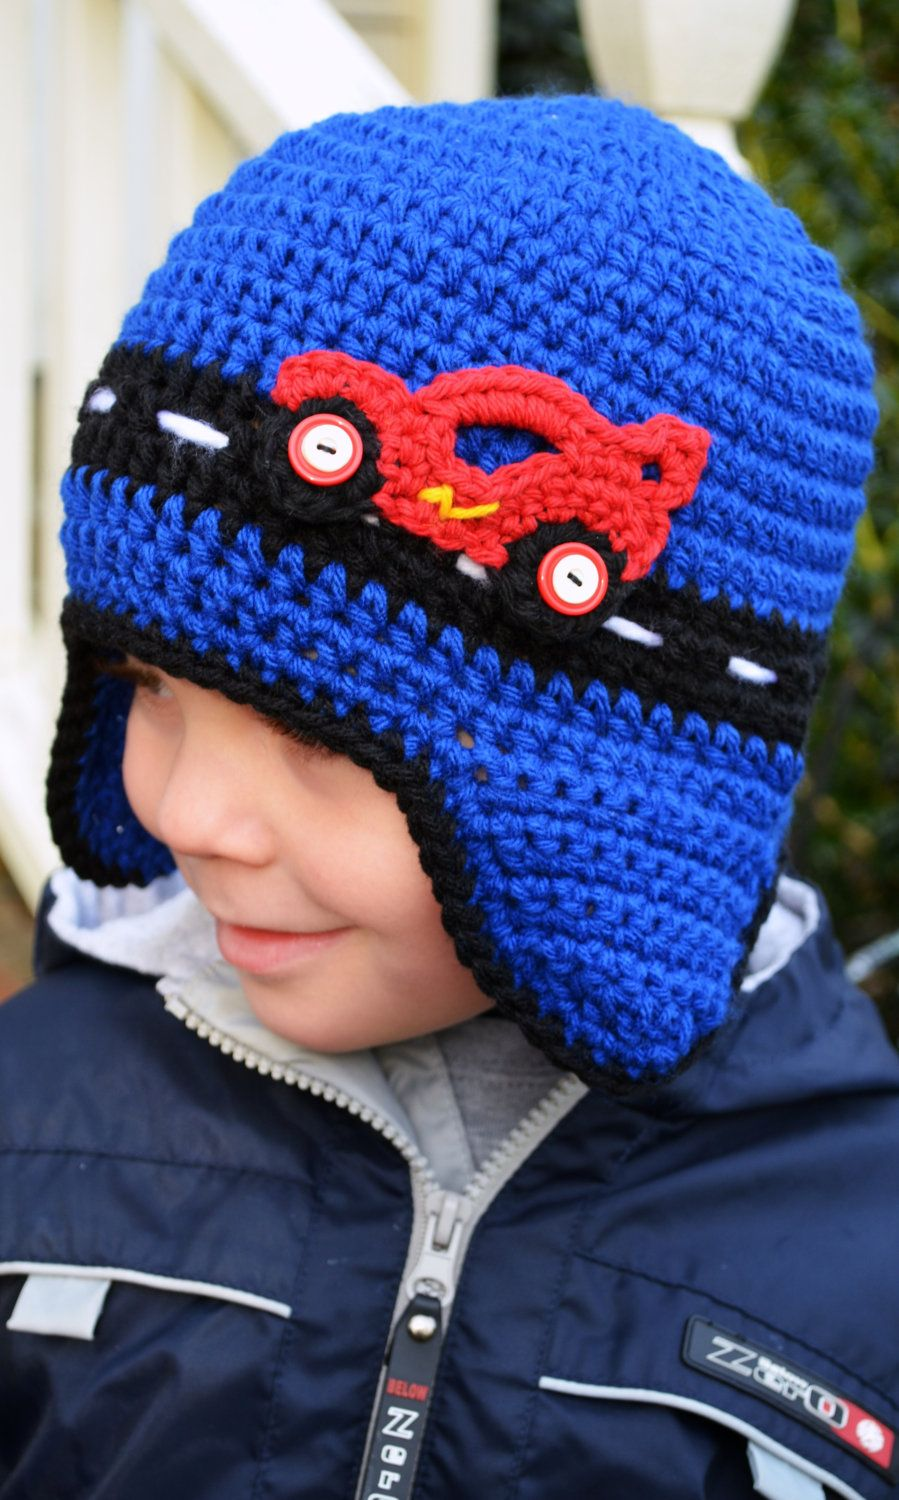 Crochet - RACE CAR HAT with earflaps - I have to try to figure out that  race car!....PINNED TO CROCHET FOR BOYS...Kerry 7f5da623a904